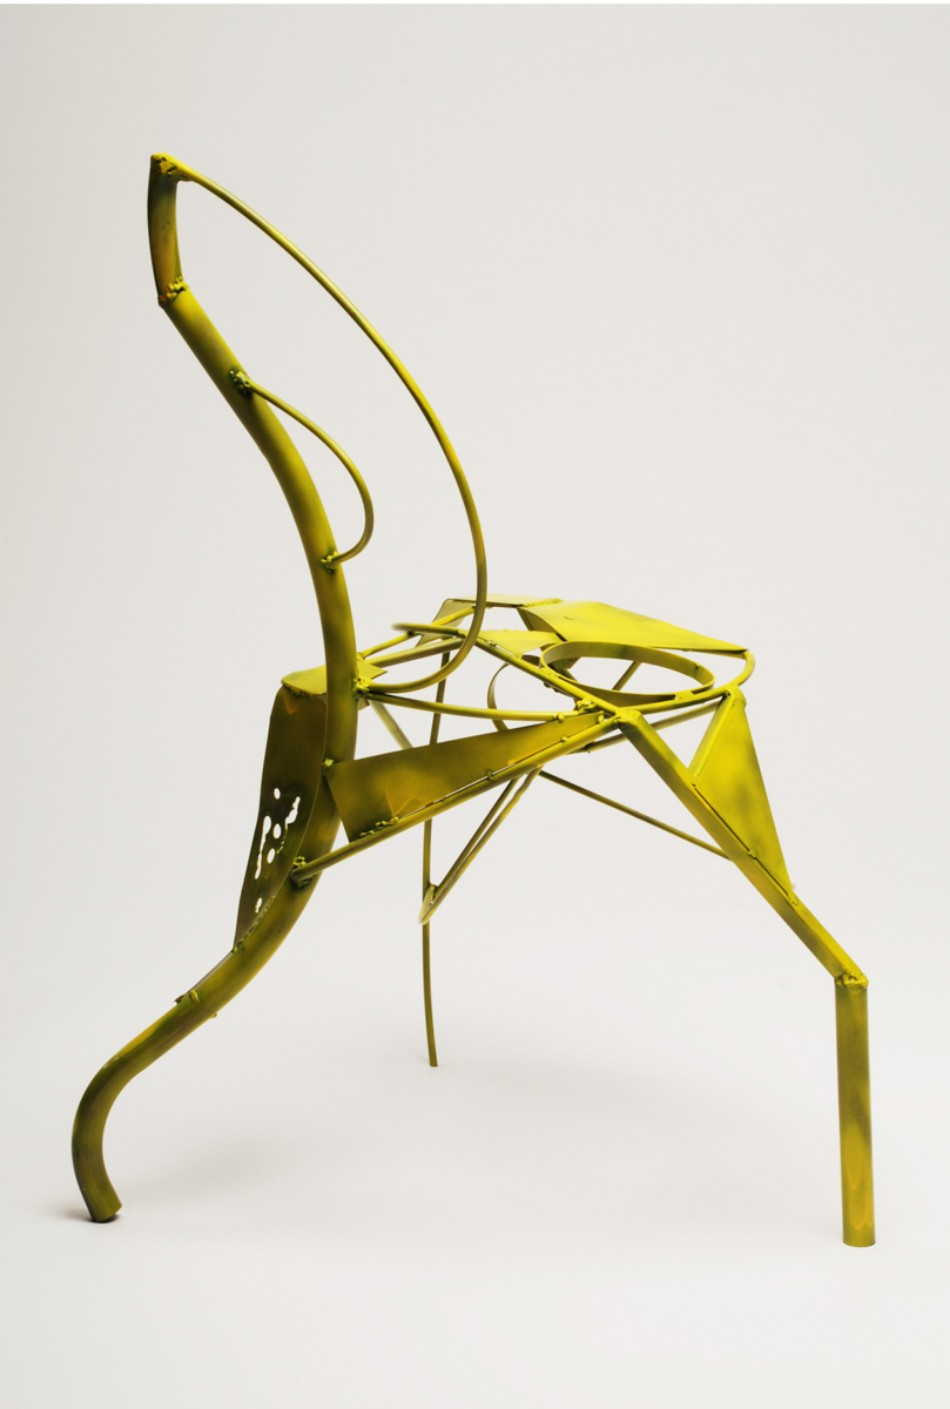 Benjamin Nordsmark Created Art From Modern Dining Chairs | www.bocadolobo.com #diningchairs #artisticchairs #artfurniture #thediningroom #diningarea #diningdesign #moderndiningtable @moderndiningtable modern Dining Chairs Benjamin Nordsmark Created Art From Modern Dining Chairs Benjamin Nordsmark Created Art From Modern Dining Chairs 9